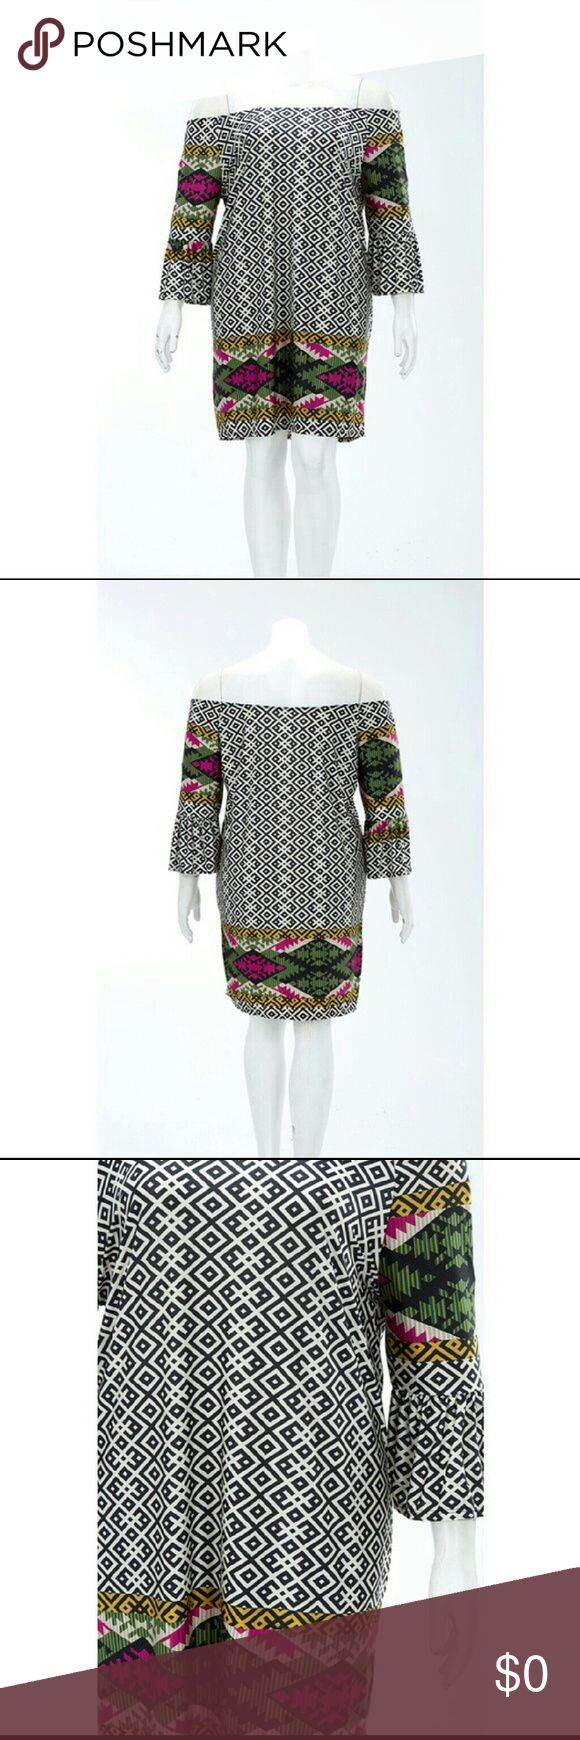 Just Arrived!  Aztec Print Off-Shoulder Plus Dress Coming soon in very limited quantities! Now adding plus sizes to my boutique!  Soft mixed Aztec print  off the shoulders minidress with bell sleeves.  Lovely piece! Made in the U.S.A.  Polyester/spandex blend. Available in 1X, 2X, and 3X. (Only 1 of each). Comment or like for arrival notice. Dresses Mini